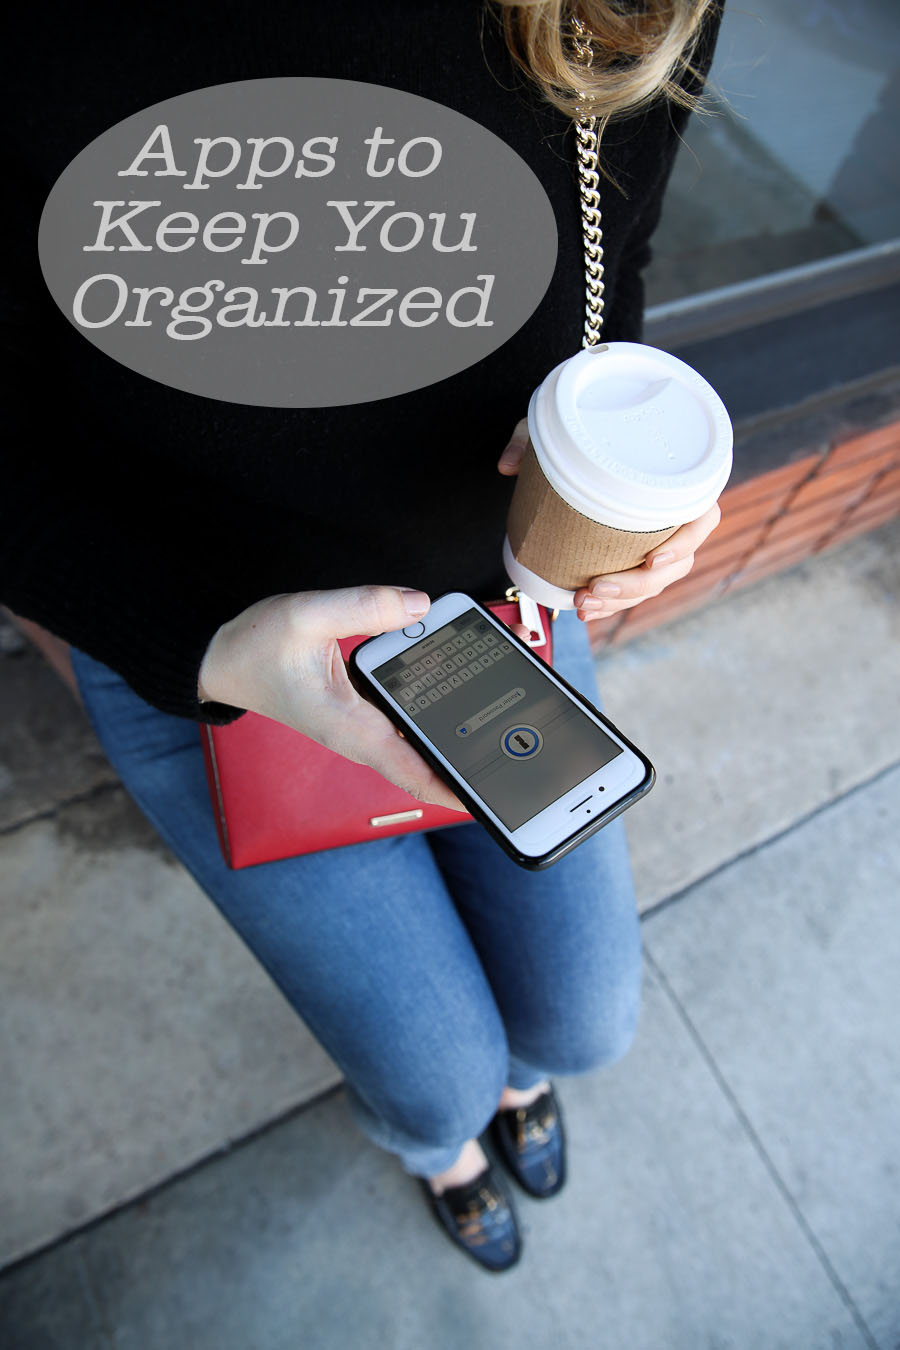 Apps to Keep you Organized. Travel tips for travel bloggers and working away from hom. #traveltips #apps #socialmedia #travel #organized